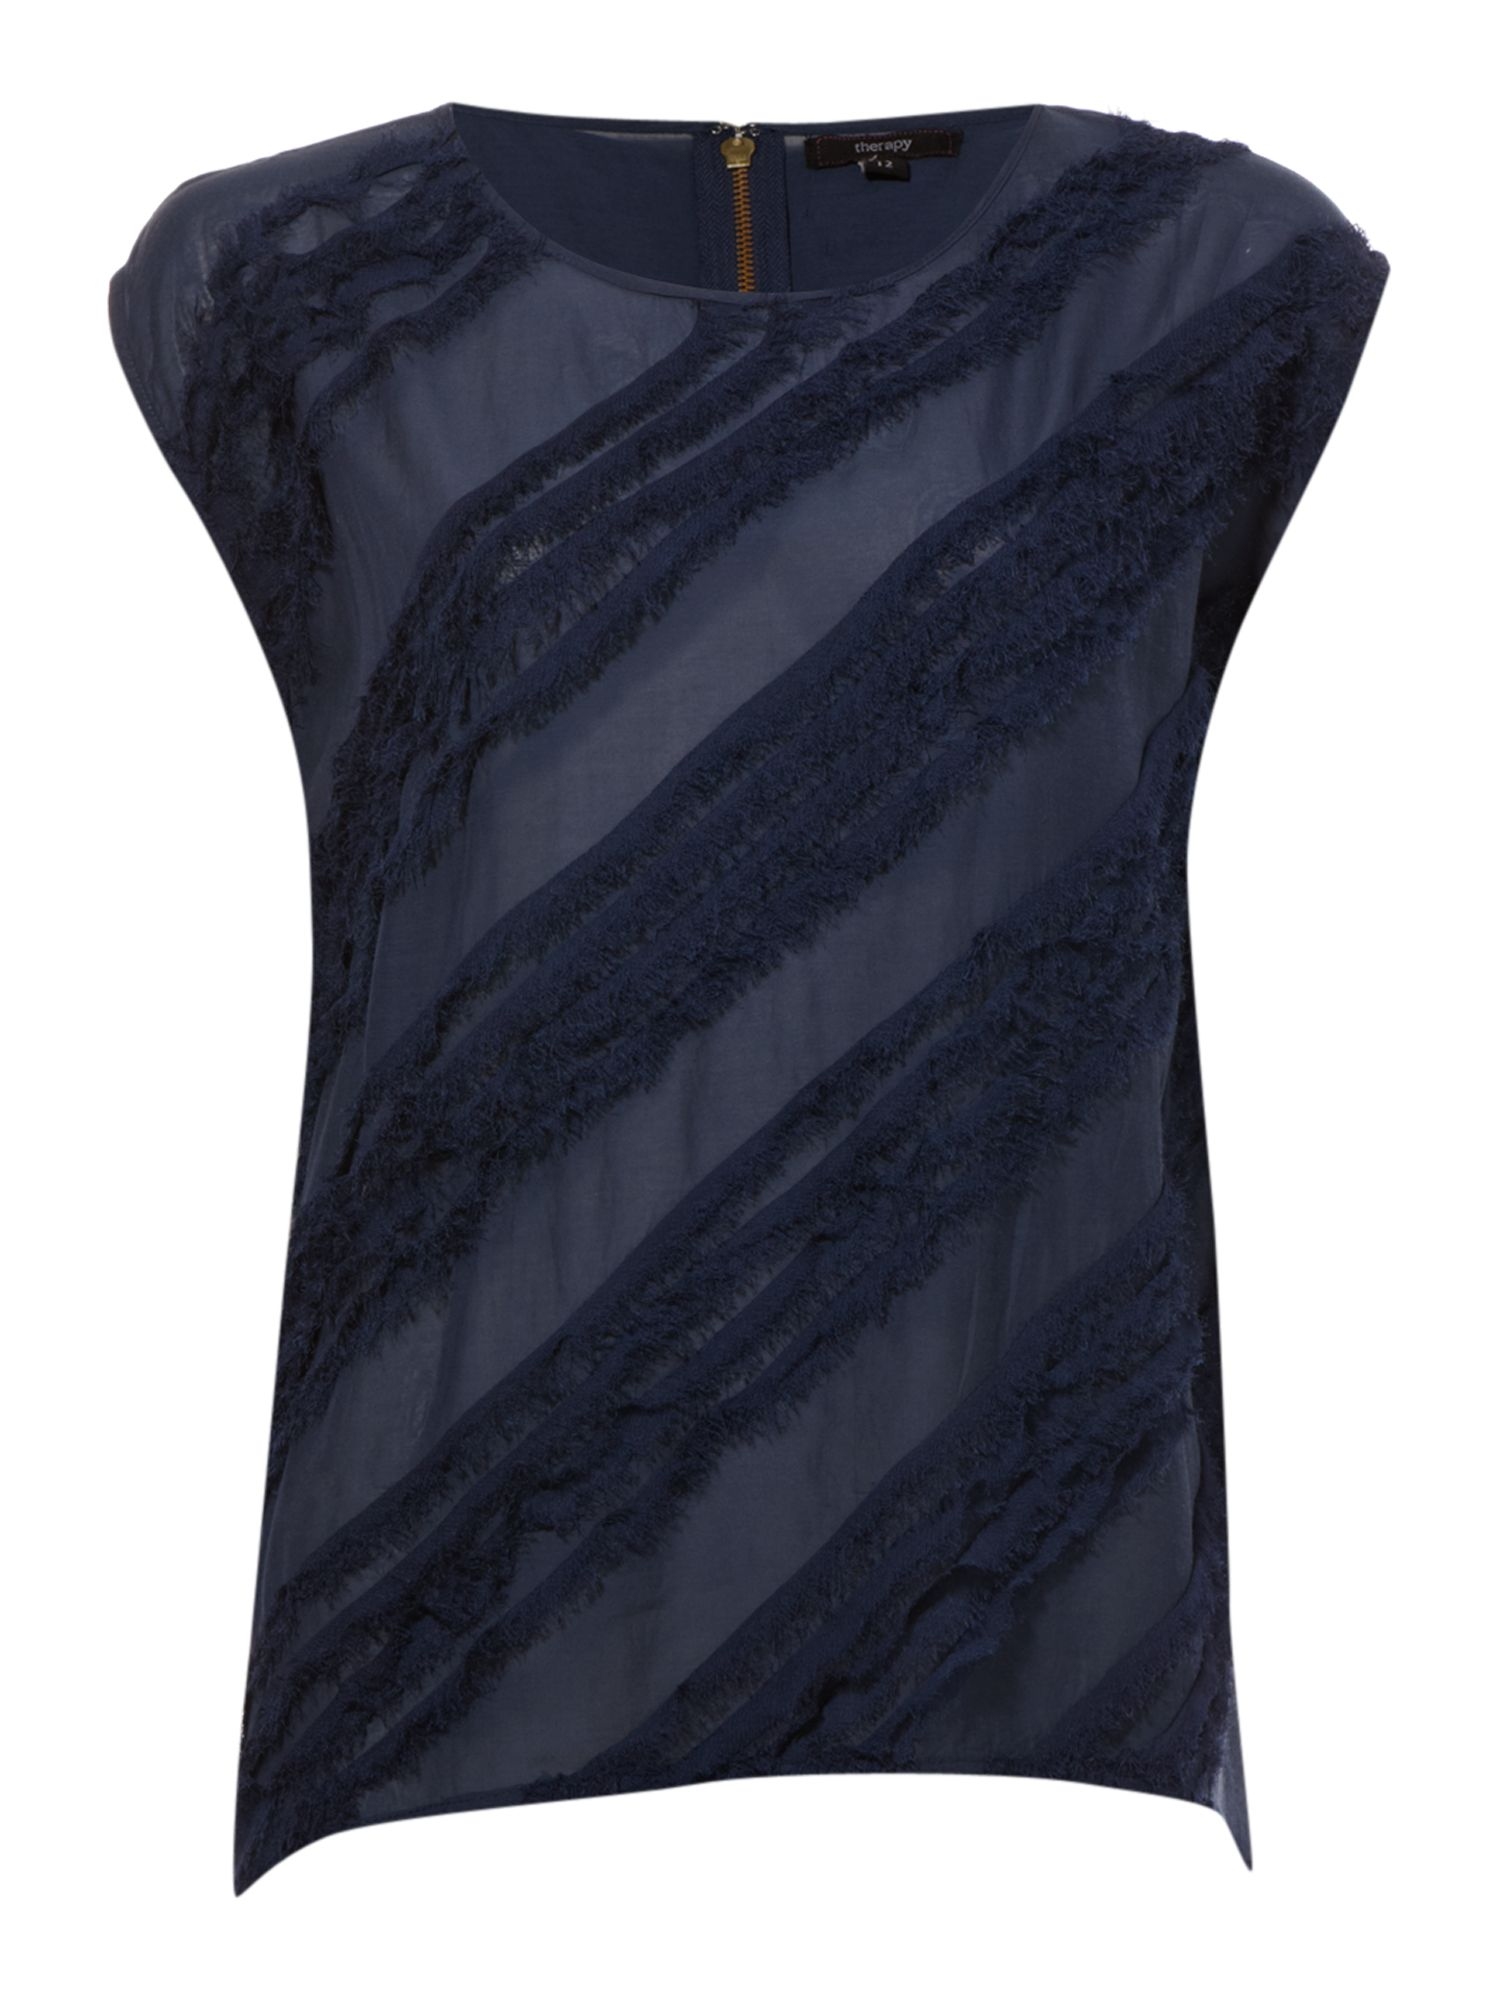 Therapy Shredded stripe blouse - Navy product image